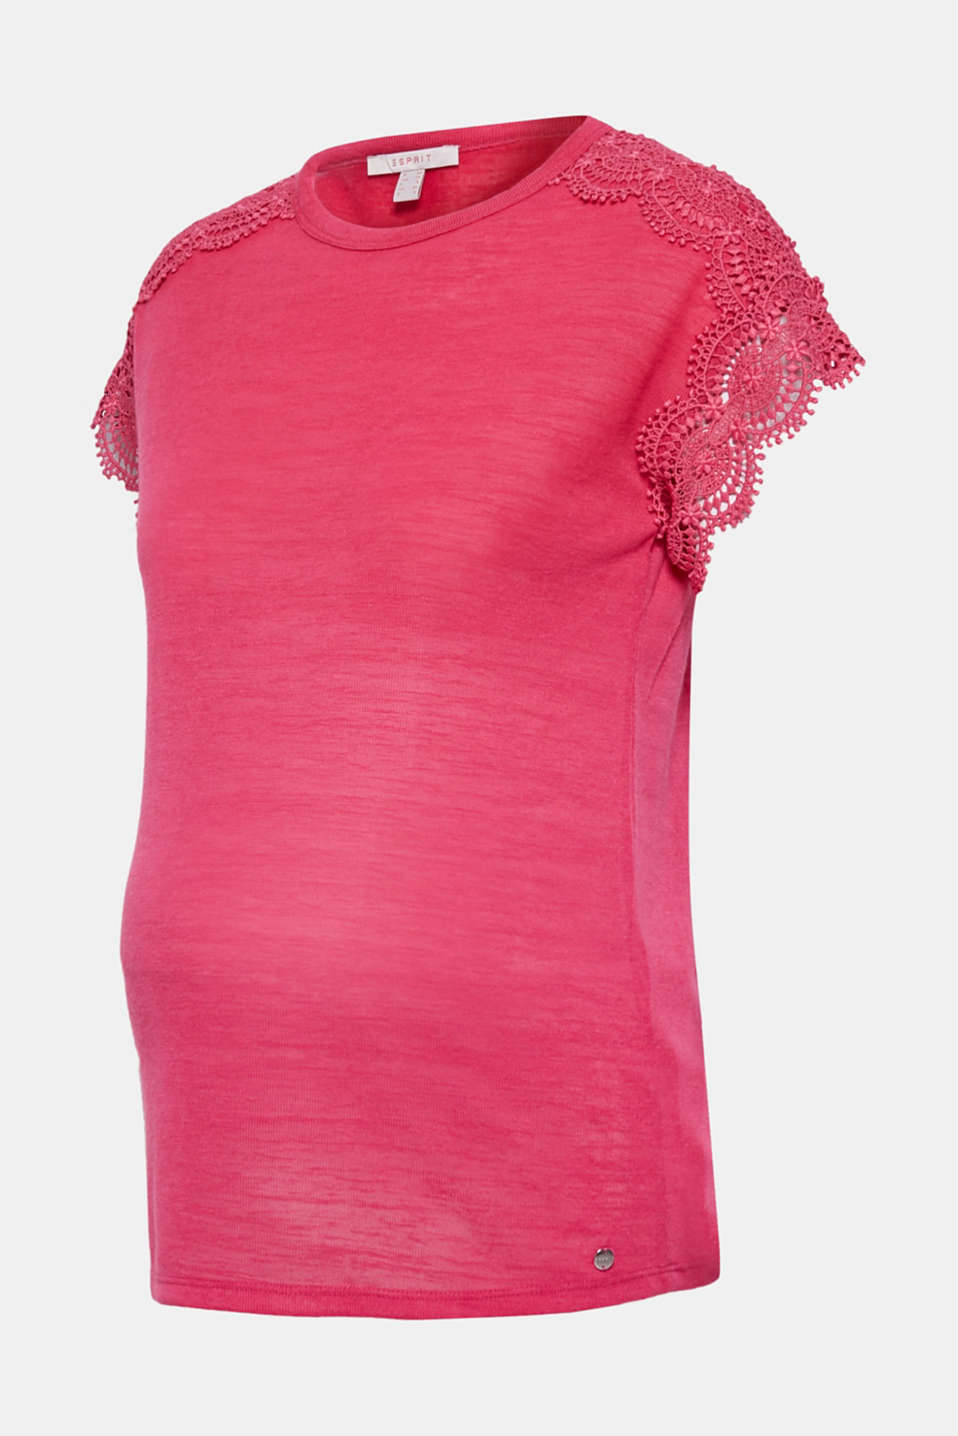 Lace-trimmed slub tee, LCPINK FUCHSIA, detail image number 5